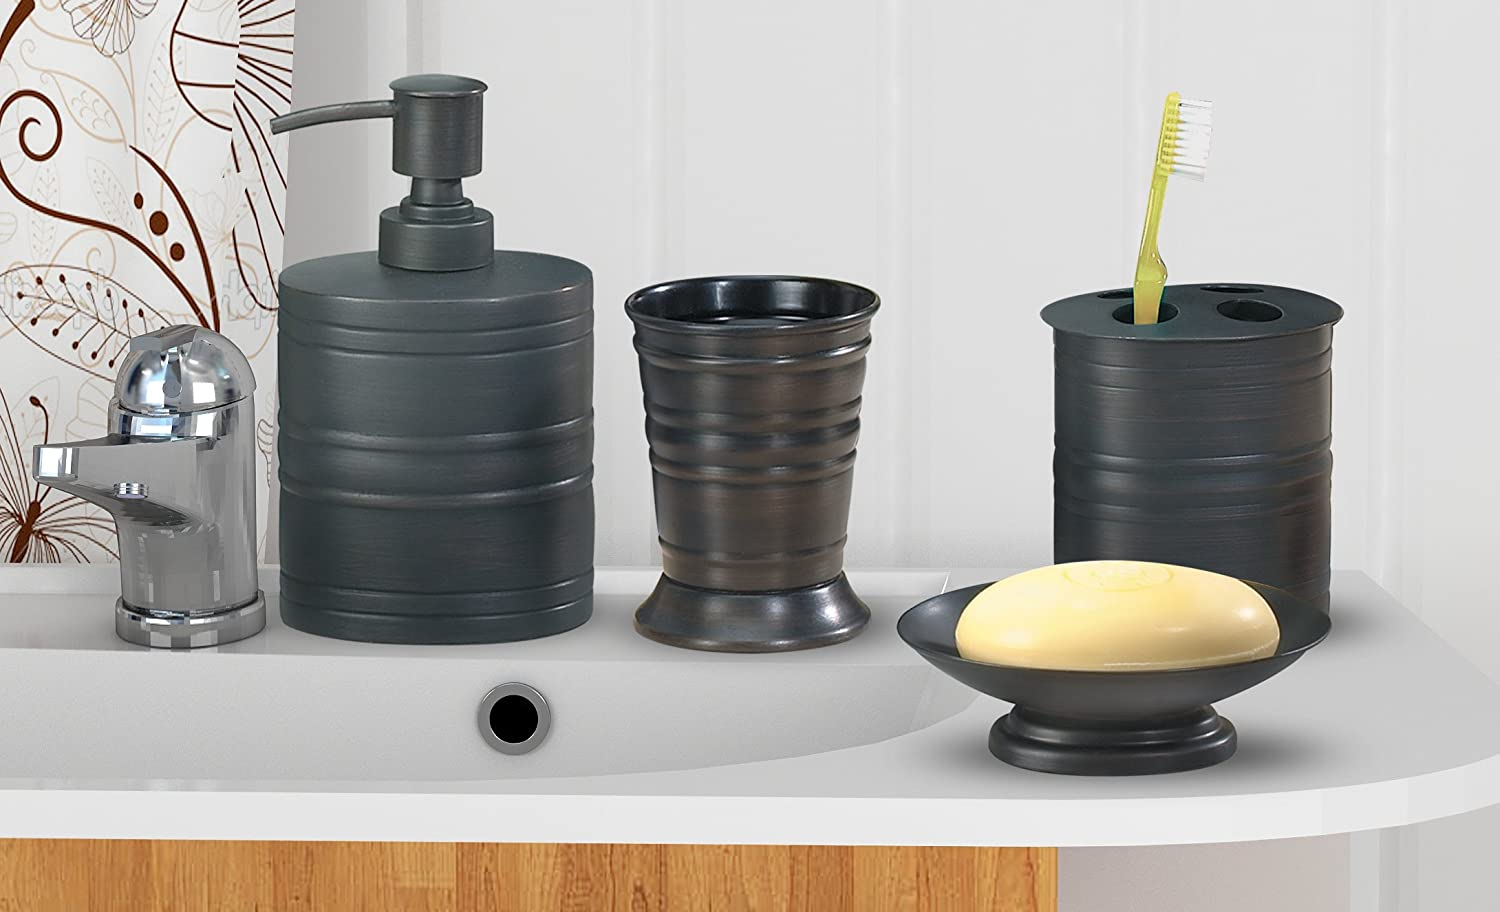 Nu steel NuSteel Includes Dish, Toothbrush Holder, Tumbler, soap Pump Bogart 4pc Set Bath Collection-Oil Rubbed Bronze